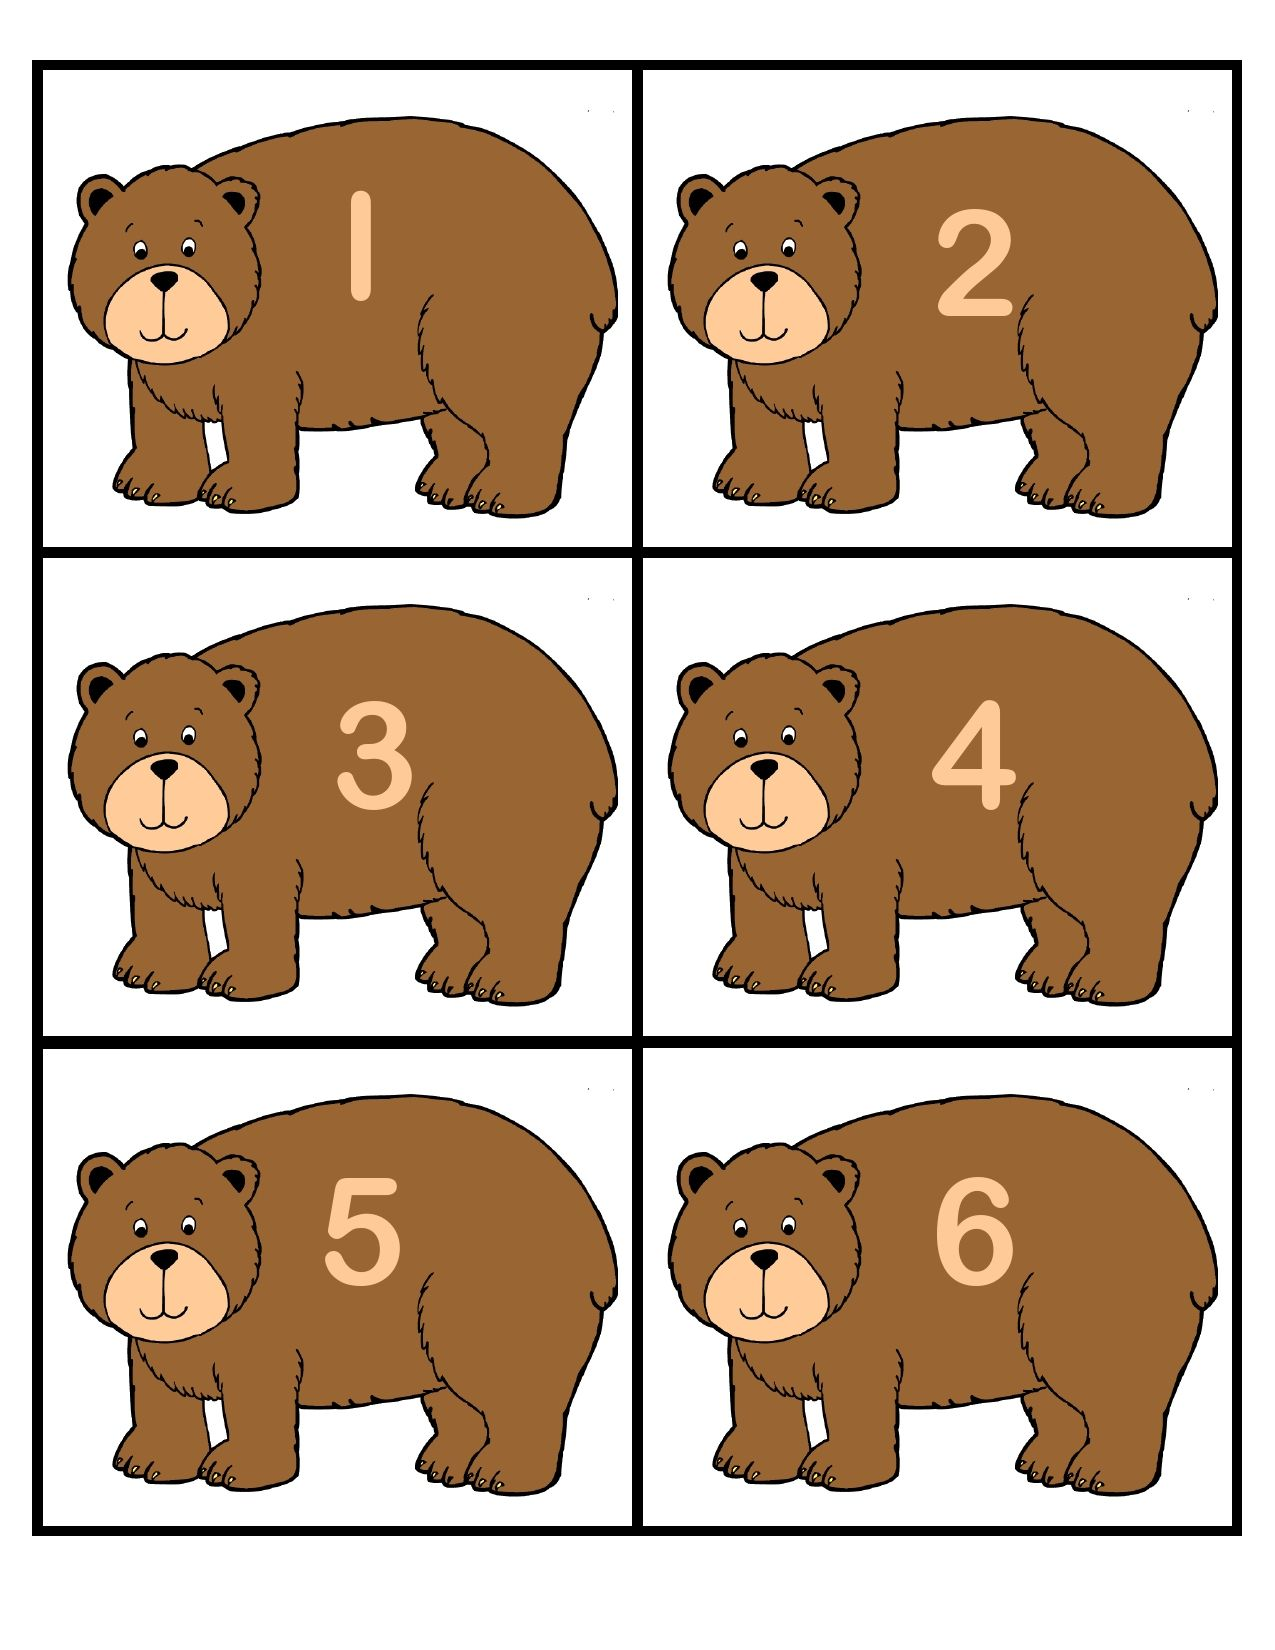 Bear Counting Game Helps Preschoolers With Number